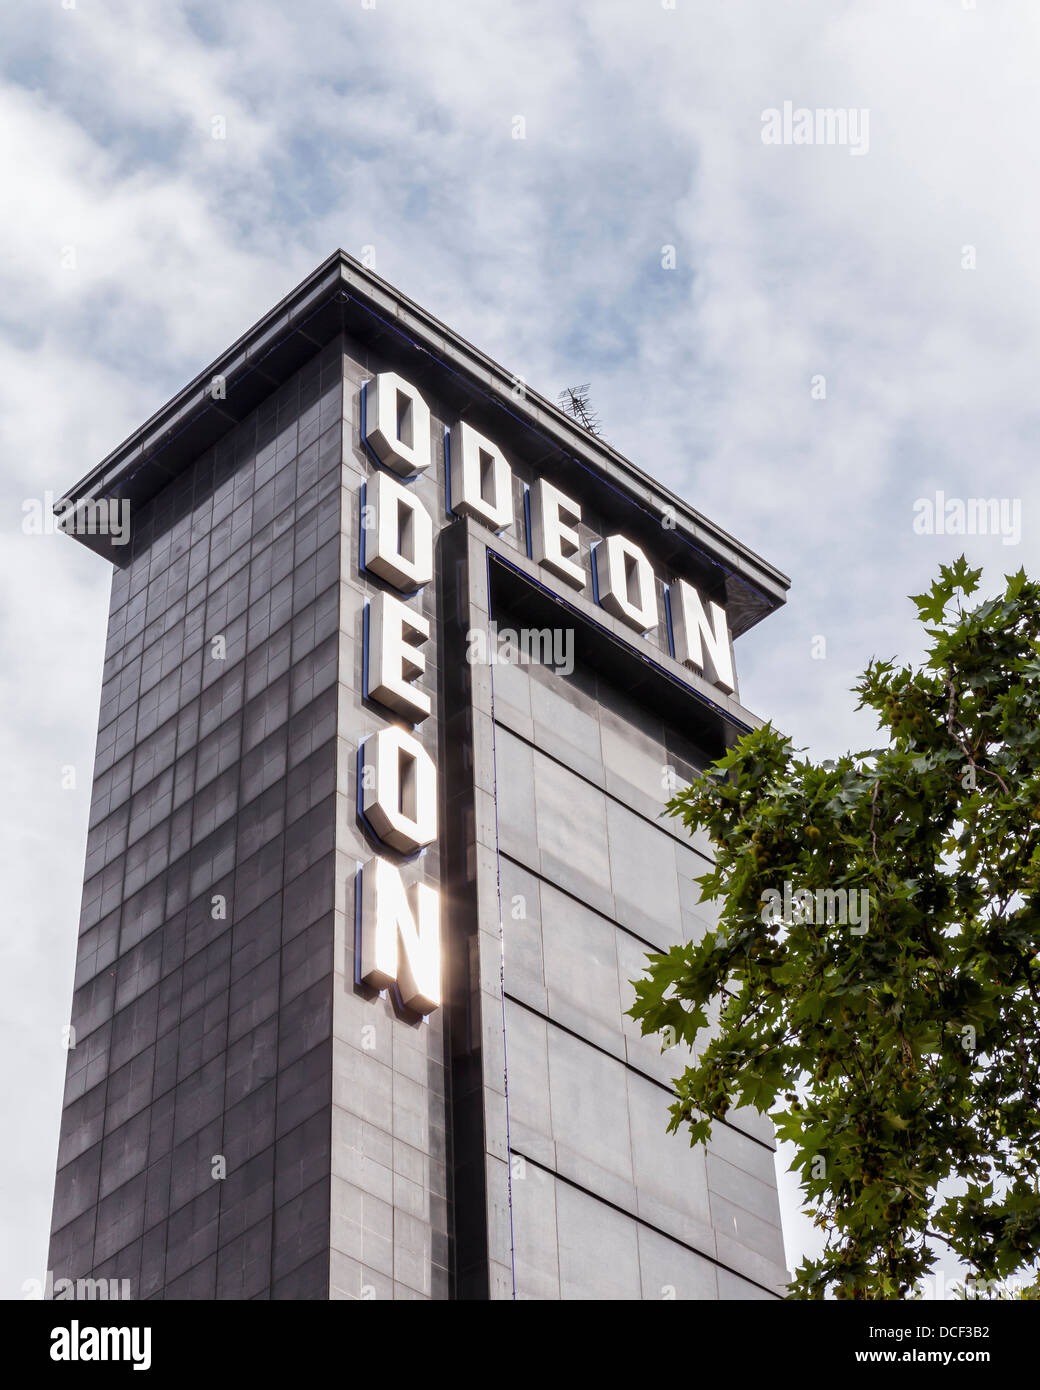 Odeon cinema - Leicester Square, London - Stock Image